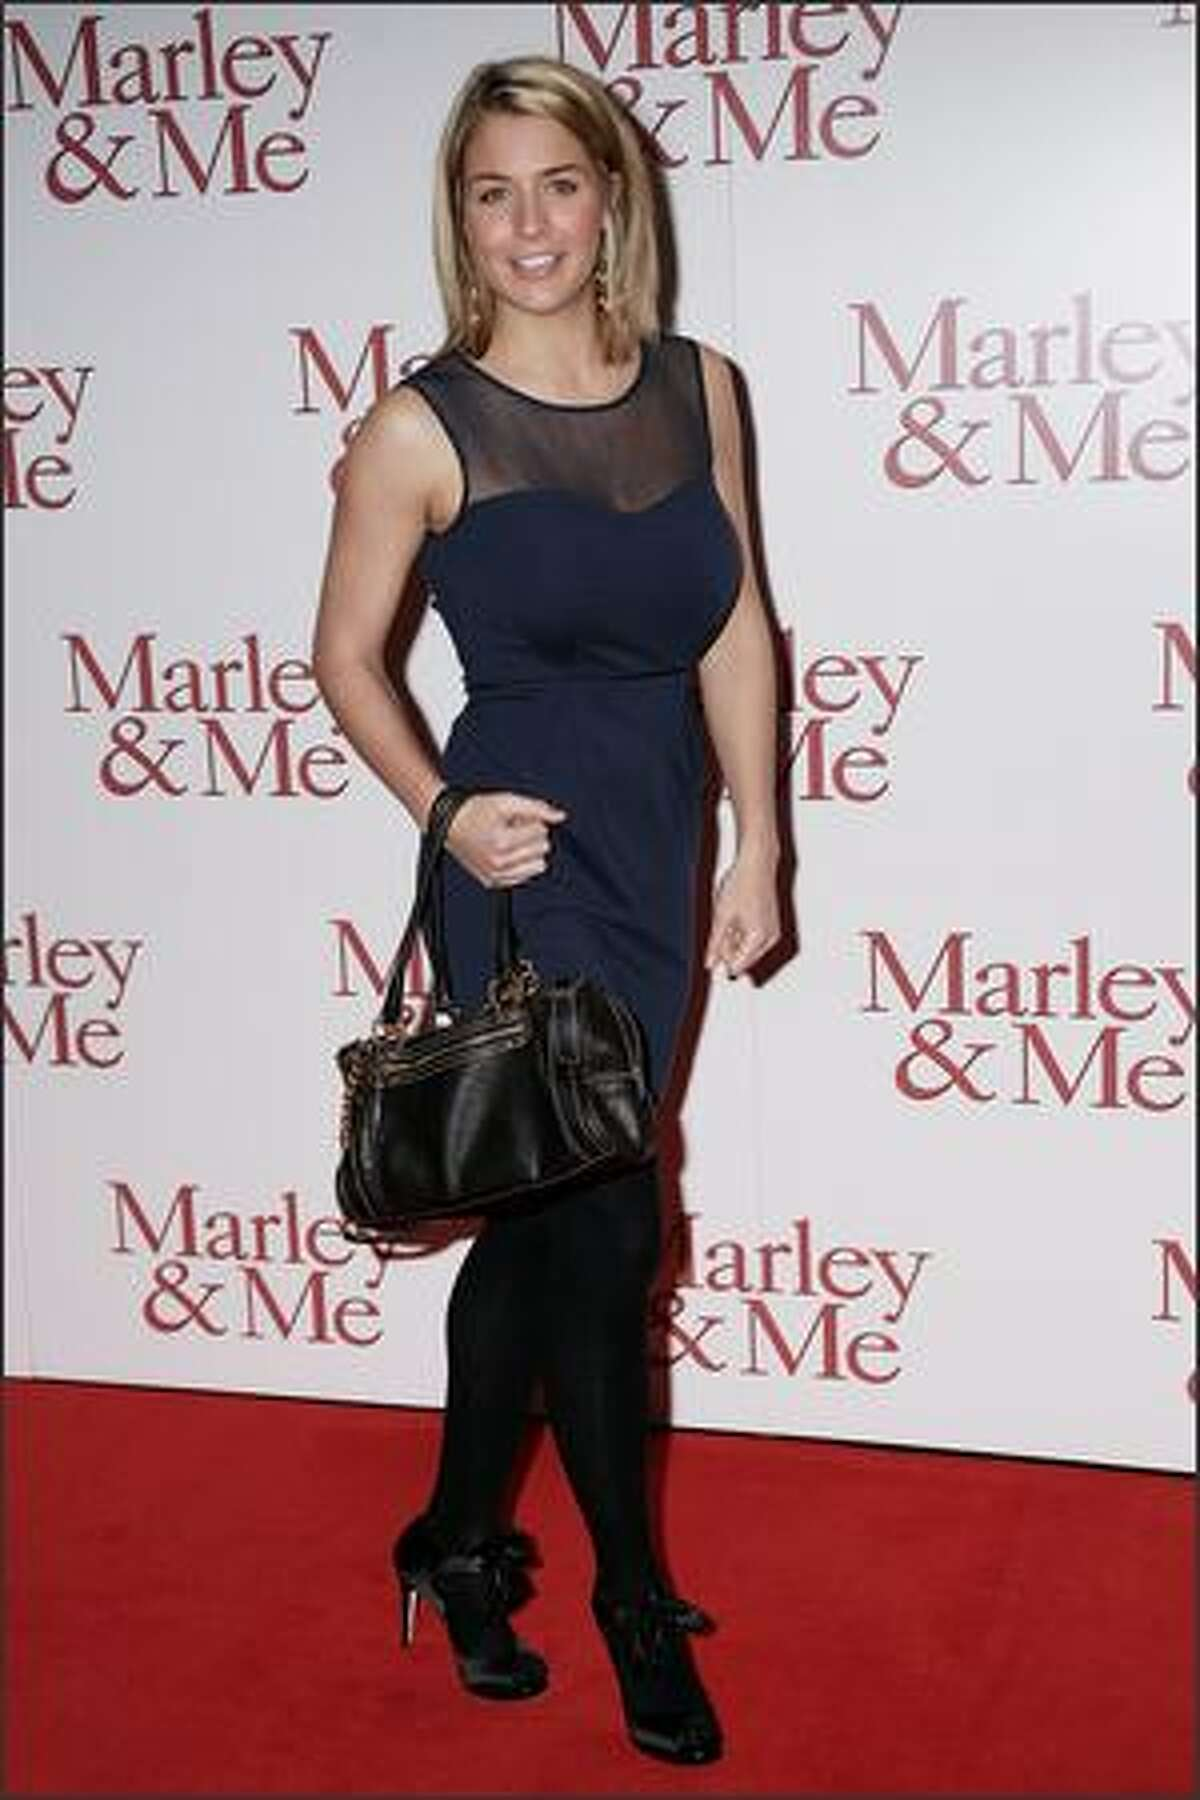 Gemma Atkinson attends the UK premiere of Marley and Me held at The Vue Cinema, Leicester Square on March 2, 2009 in London, England.